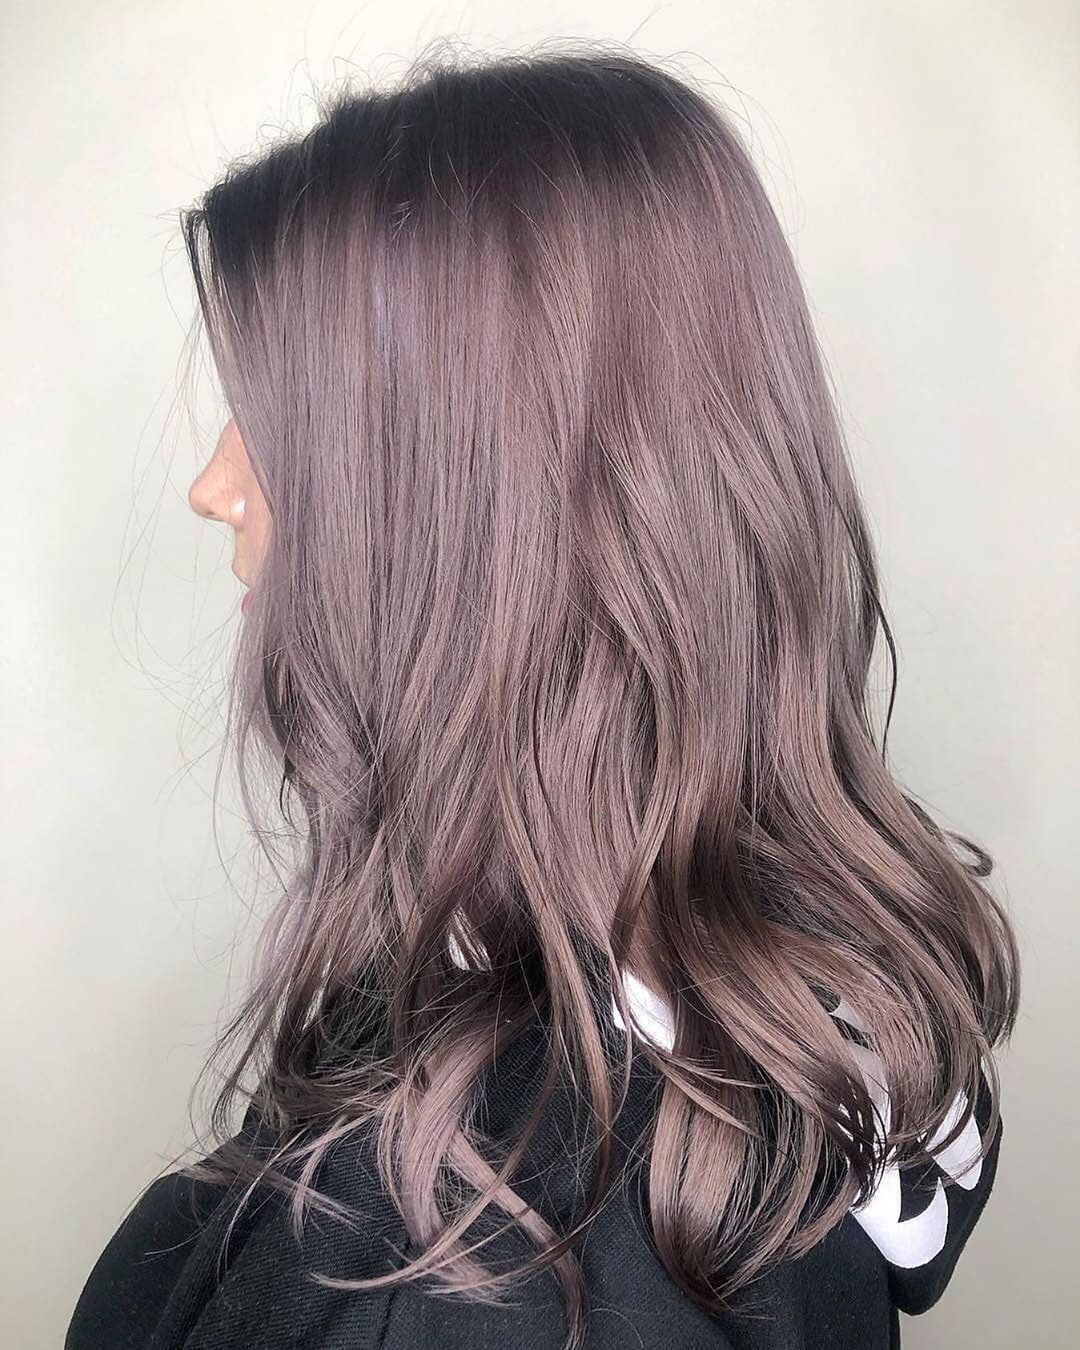 We Re Constantly Mesmerized By The Beautiful Creation Including This Latest Hair Work Lavender Blush Stylist Number76 Makino Omotesando Tokyo